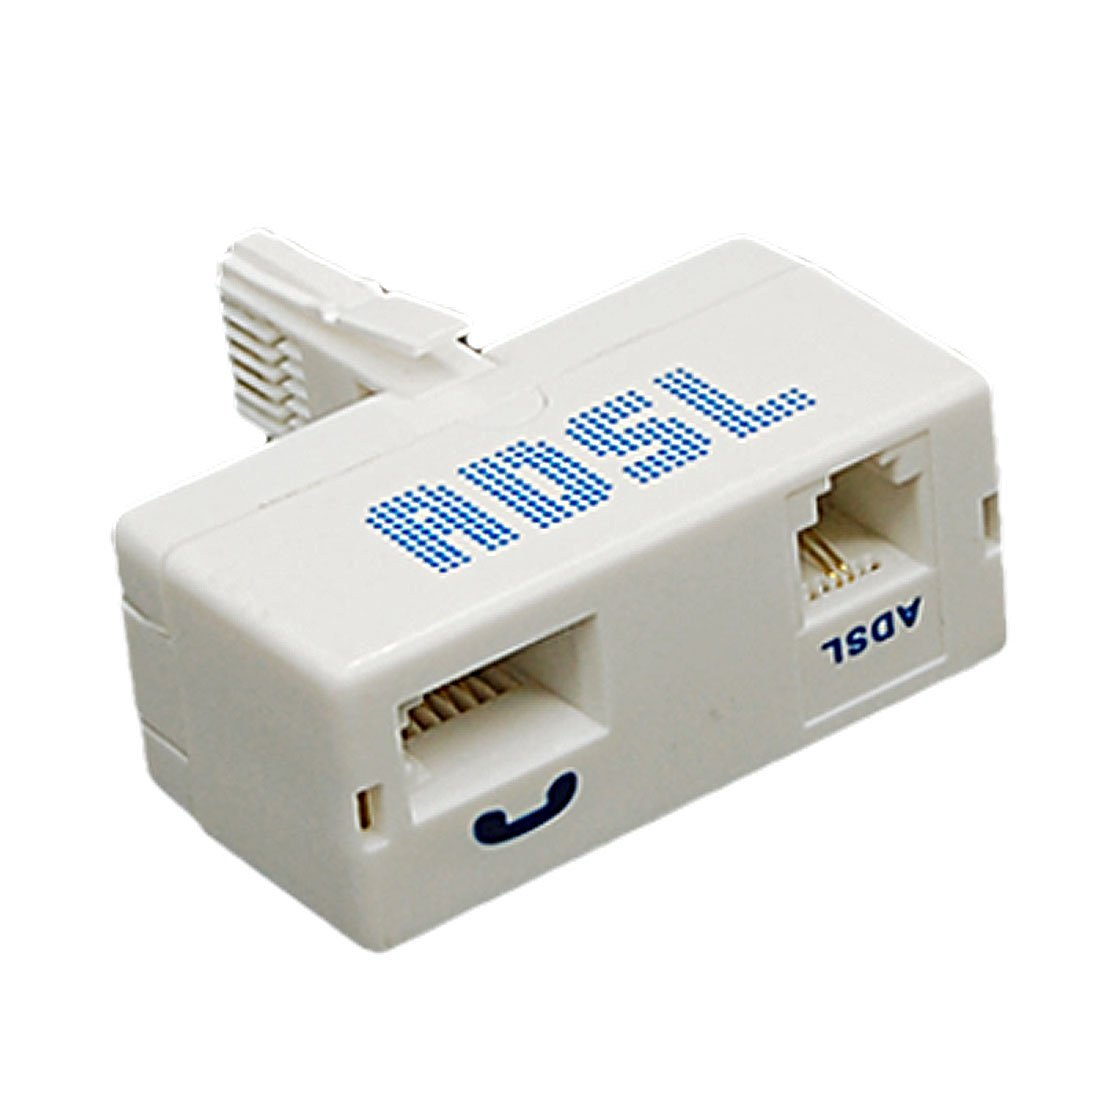 Cheap Uk Telephone Wiring Find Deals On Line At Block Radio Shack Get Quotations Uxcell Bt Plug To Rj11 Socket Adapter And Convertor For Landline